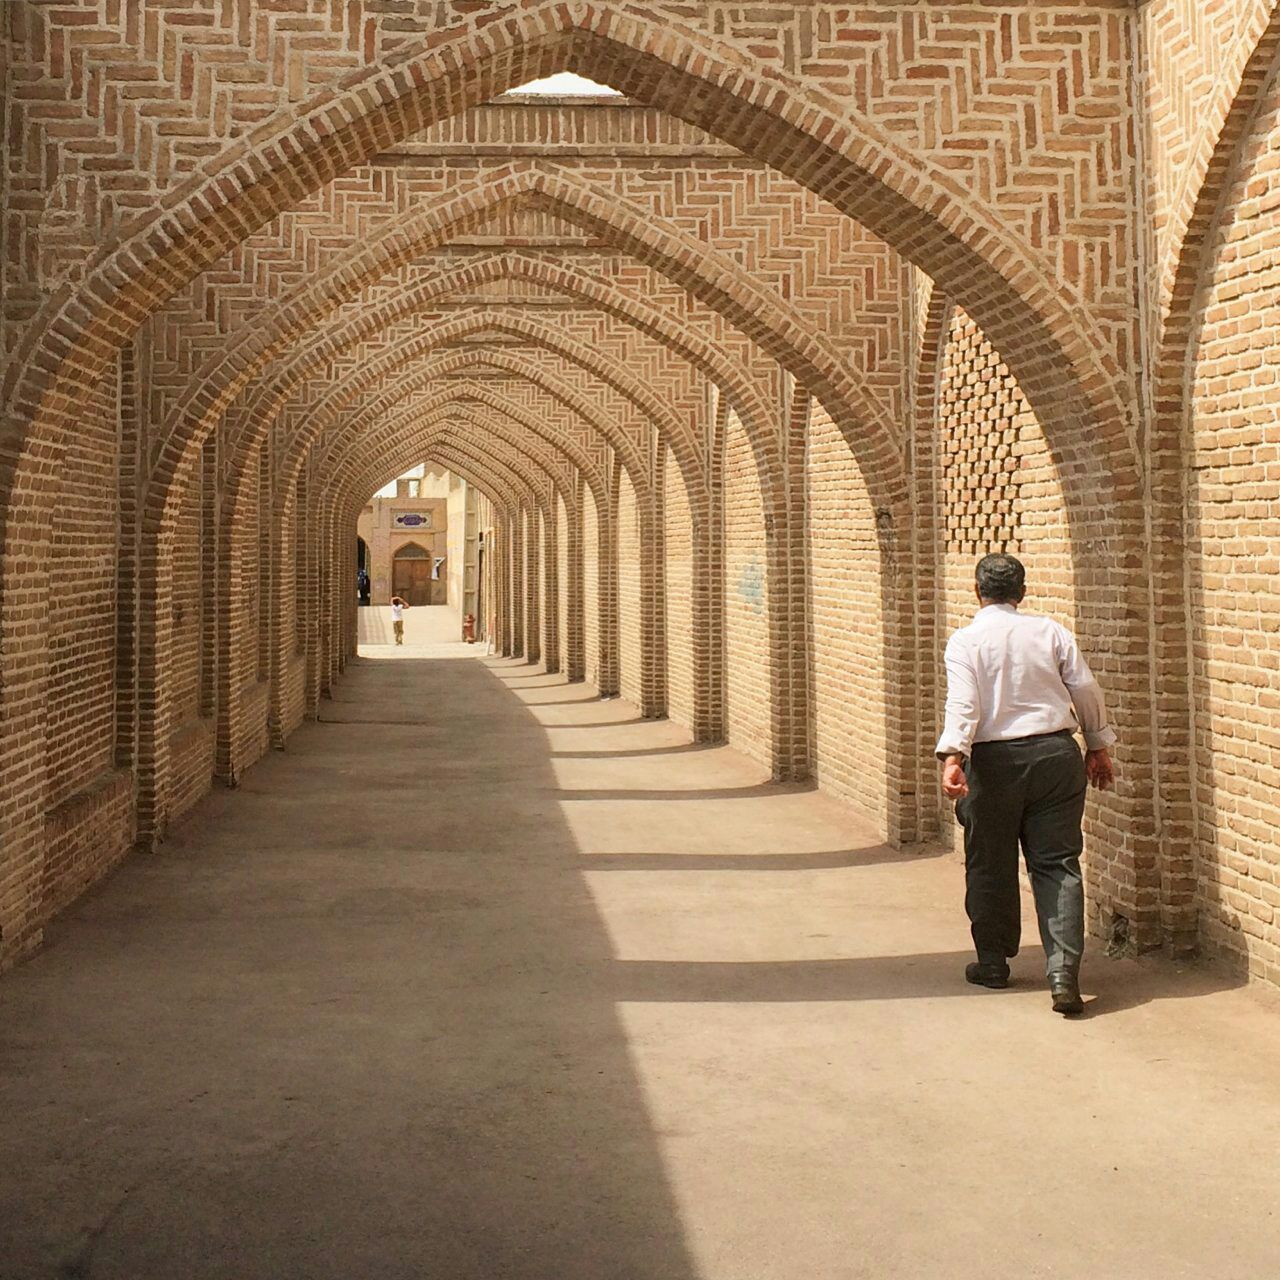 arch, architecture, history, the way forward, indoors, one person, real people, built structure, corridor, full length, architectural column, day, men, adult, people